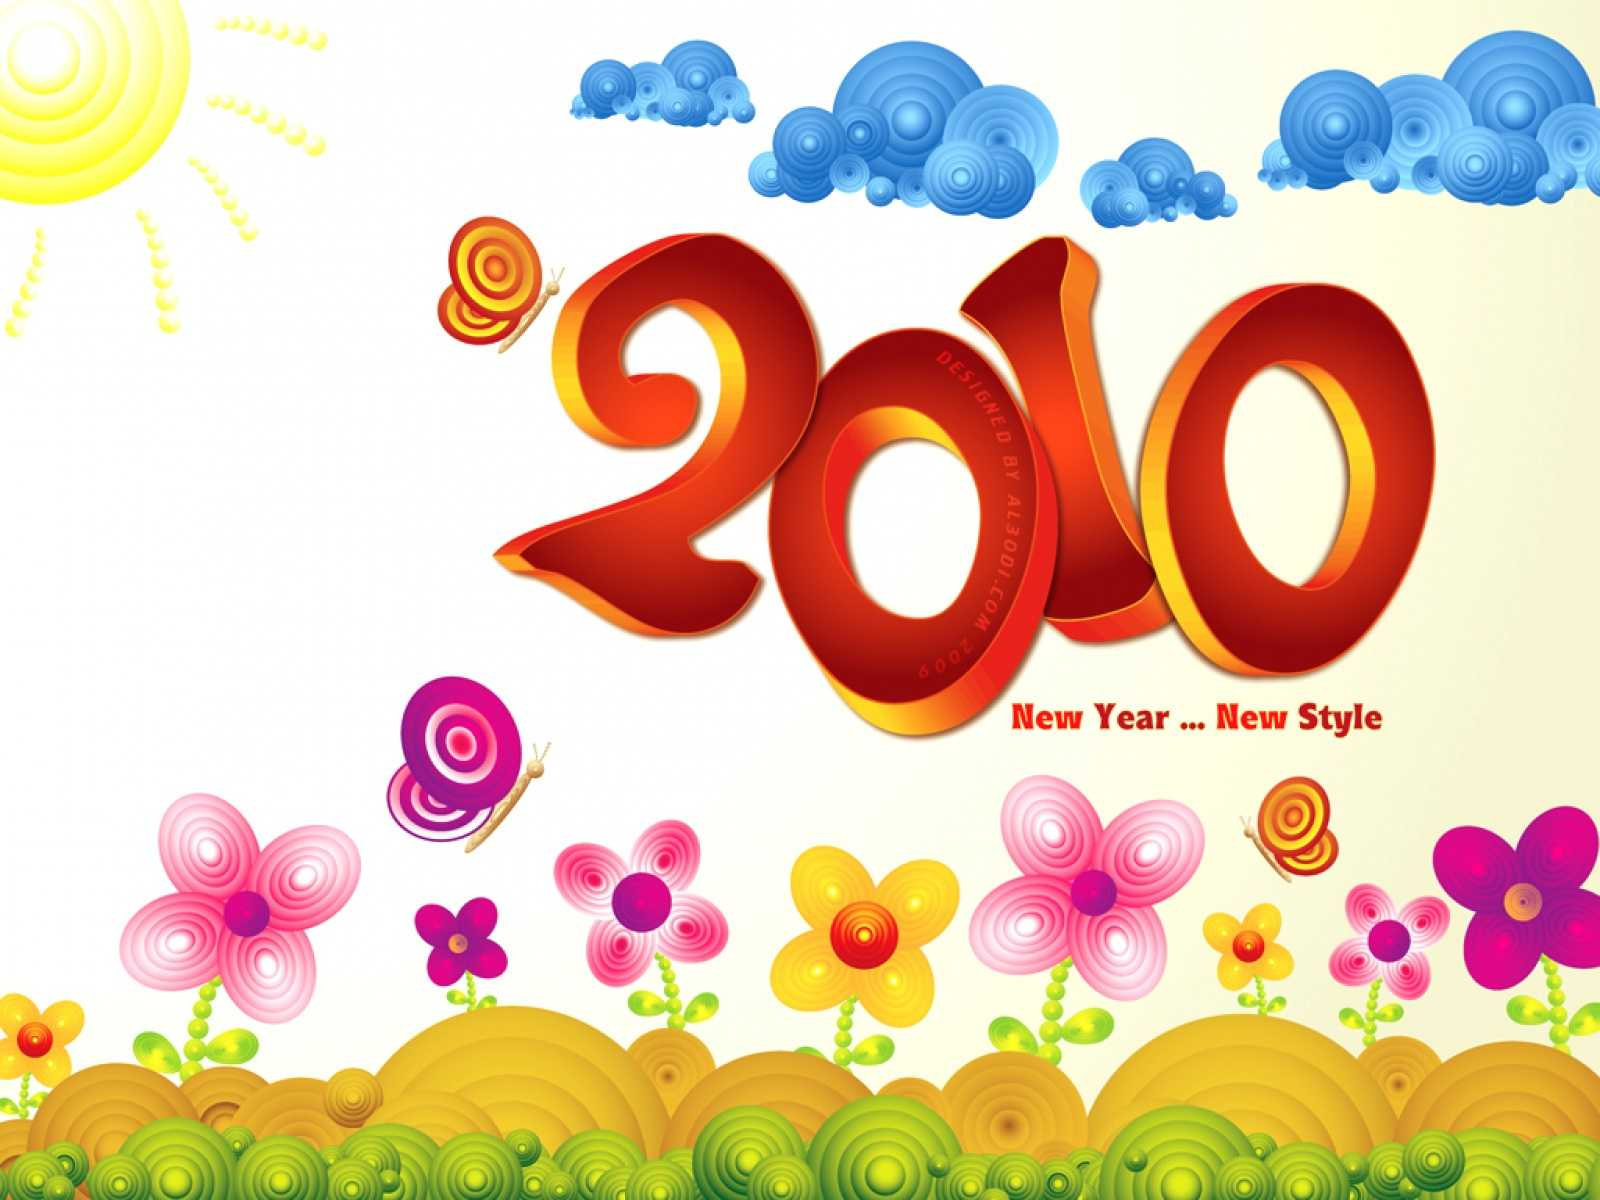 2010 New Year New Style